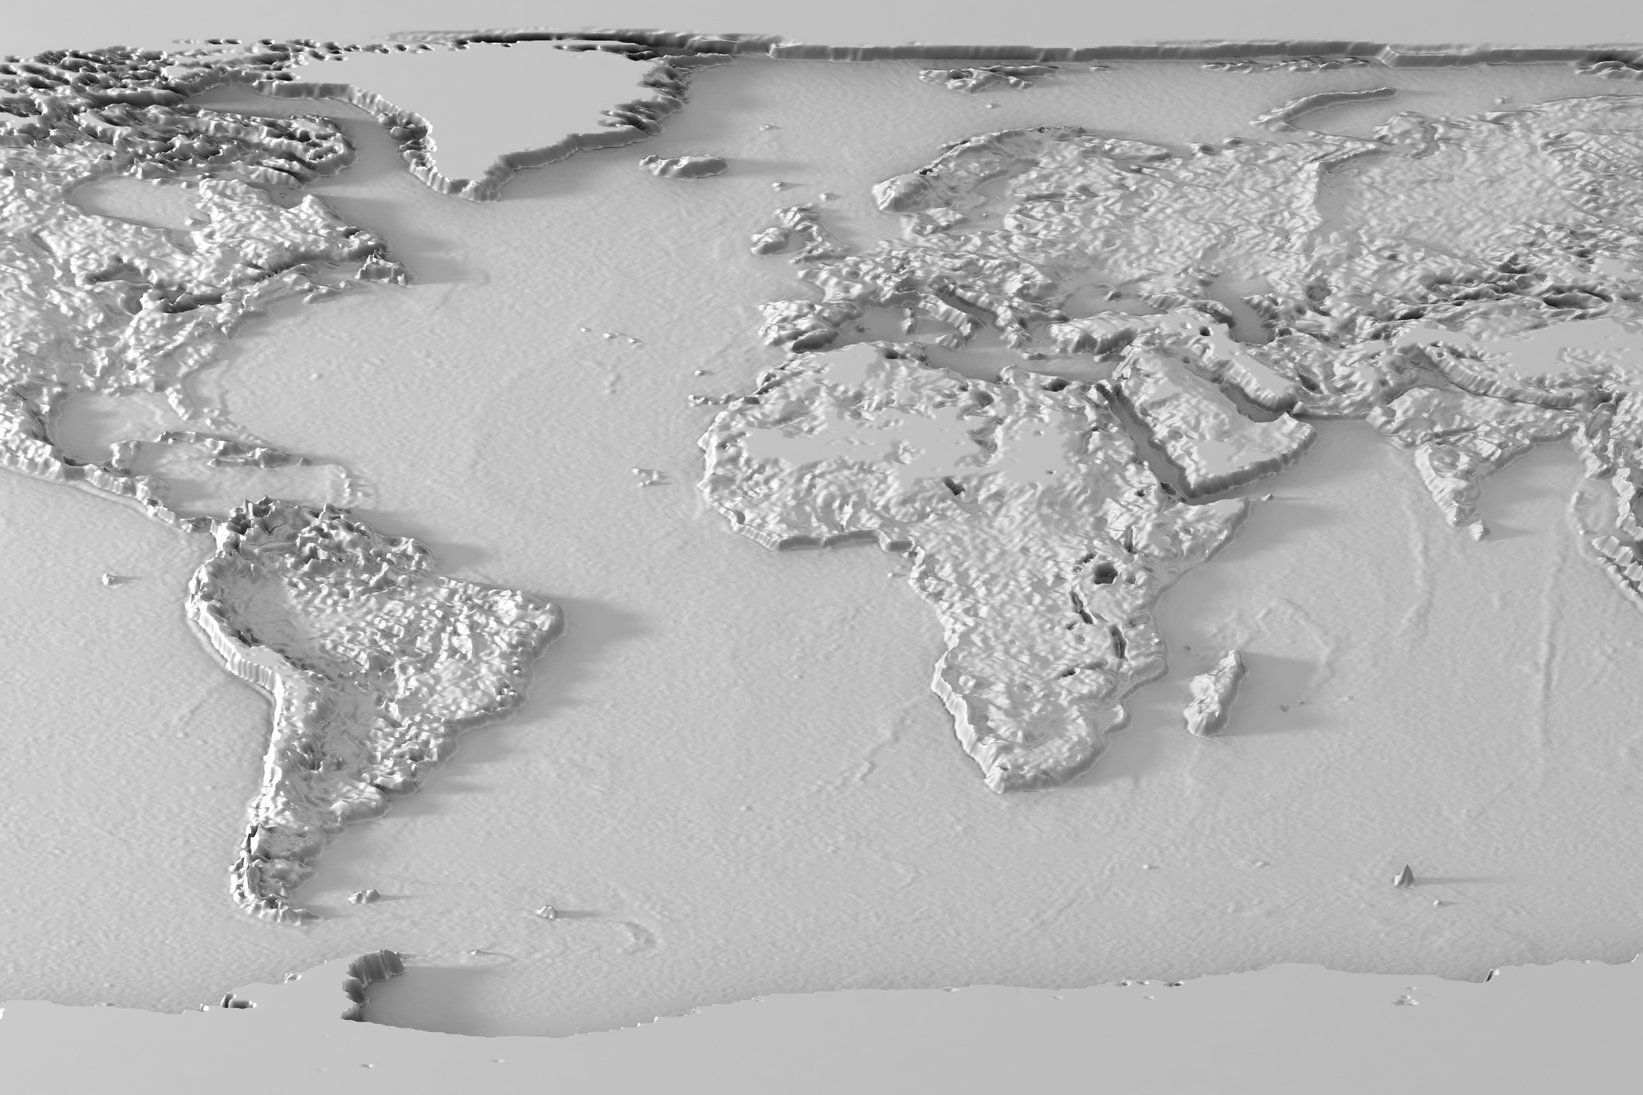 How to Create a 3D Bump Map Using Photoshop